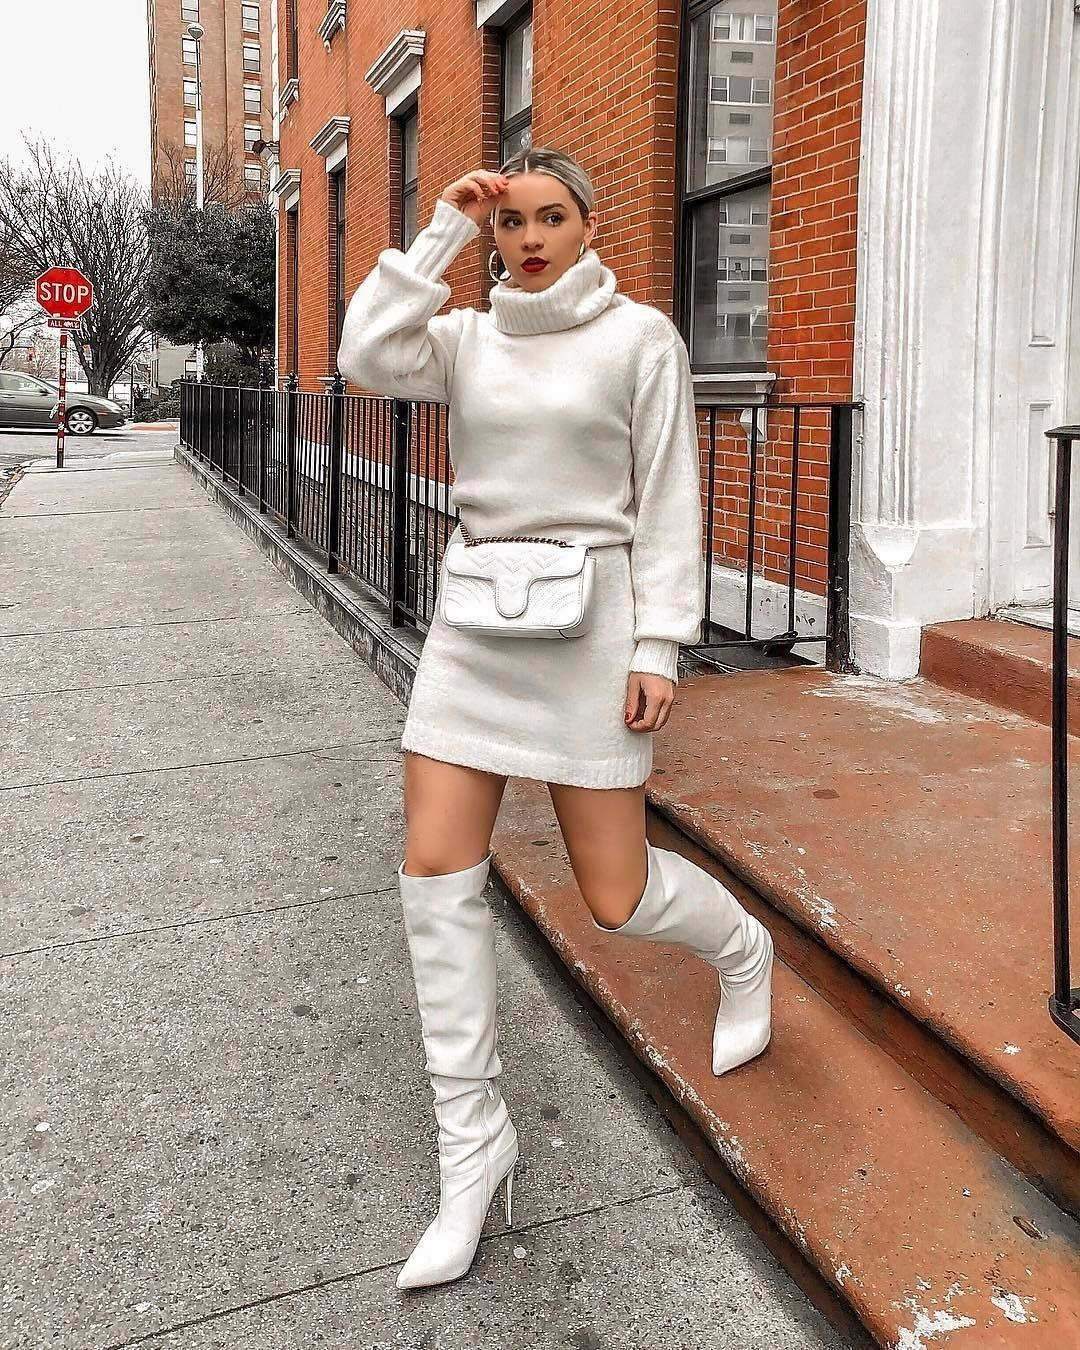 Winter Whites Kerifay Loveguess White Boots Outfit Fashion Urban Outfits [ 1350 x 1080 Pixel ]